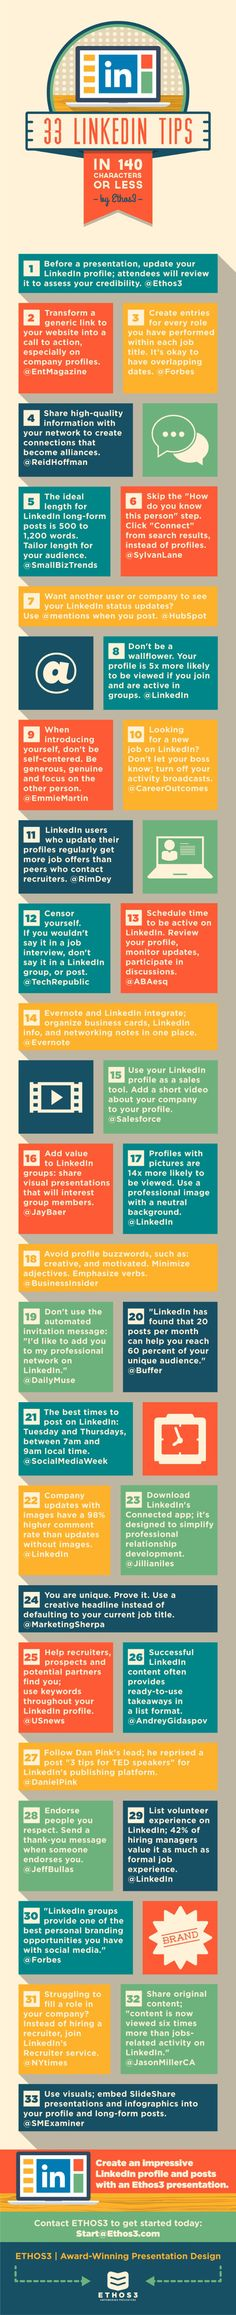 Infographic: 33 Tweetable Tips to Help You Master LinkedIn